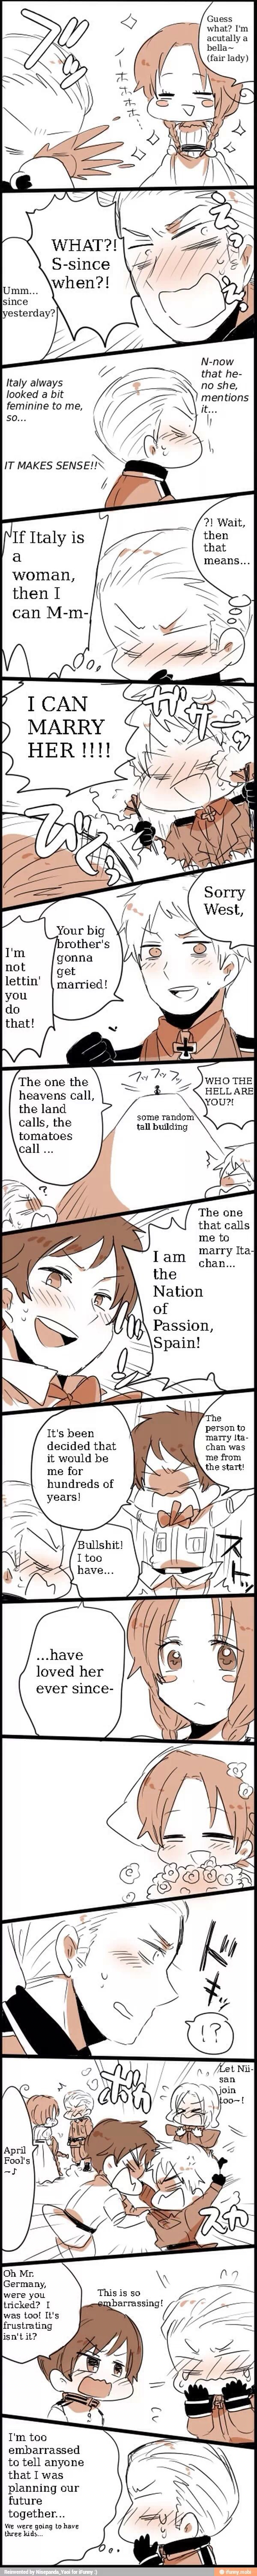 Dawww...It would have made so much more sense for poor Germany